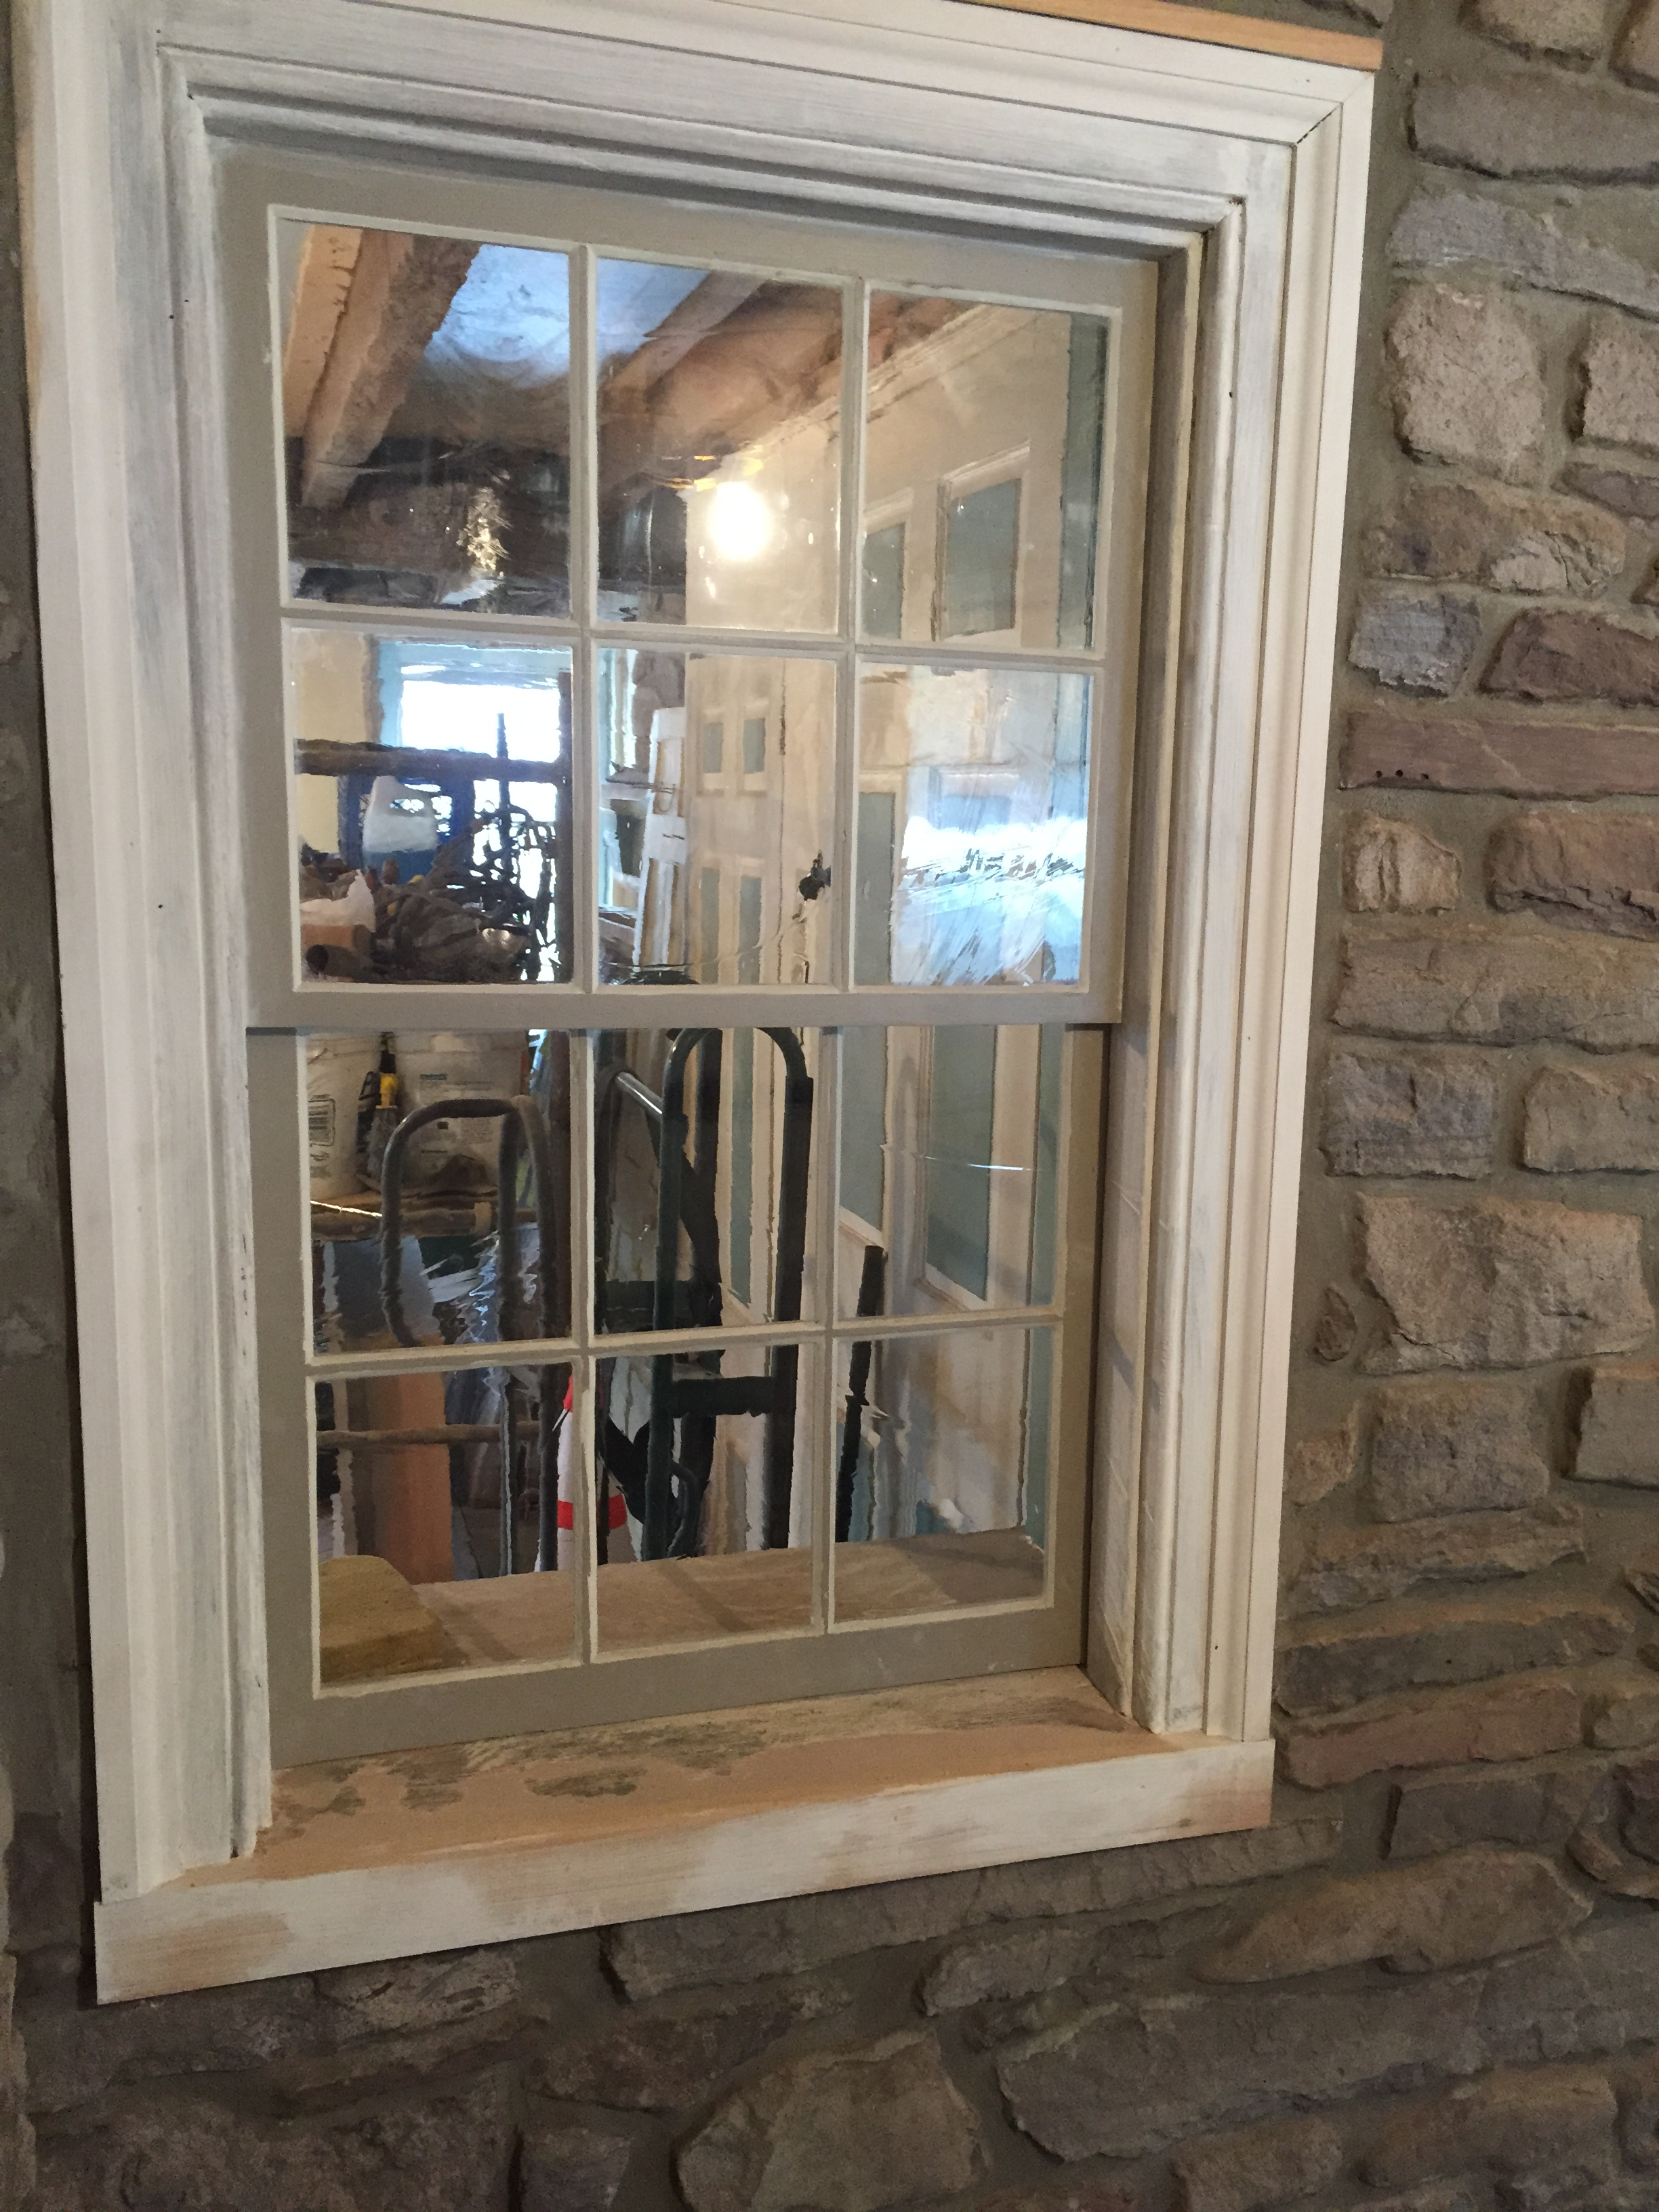 terri feralio - historic window restoration.JPG